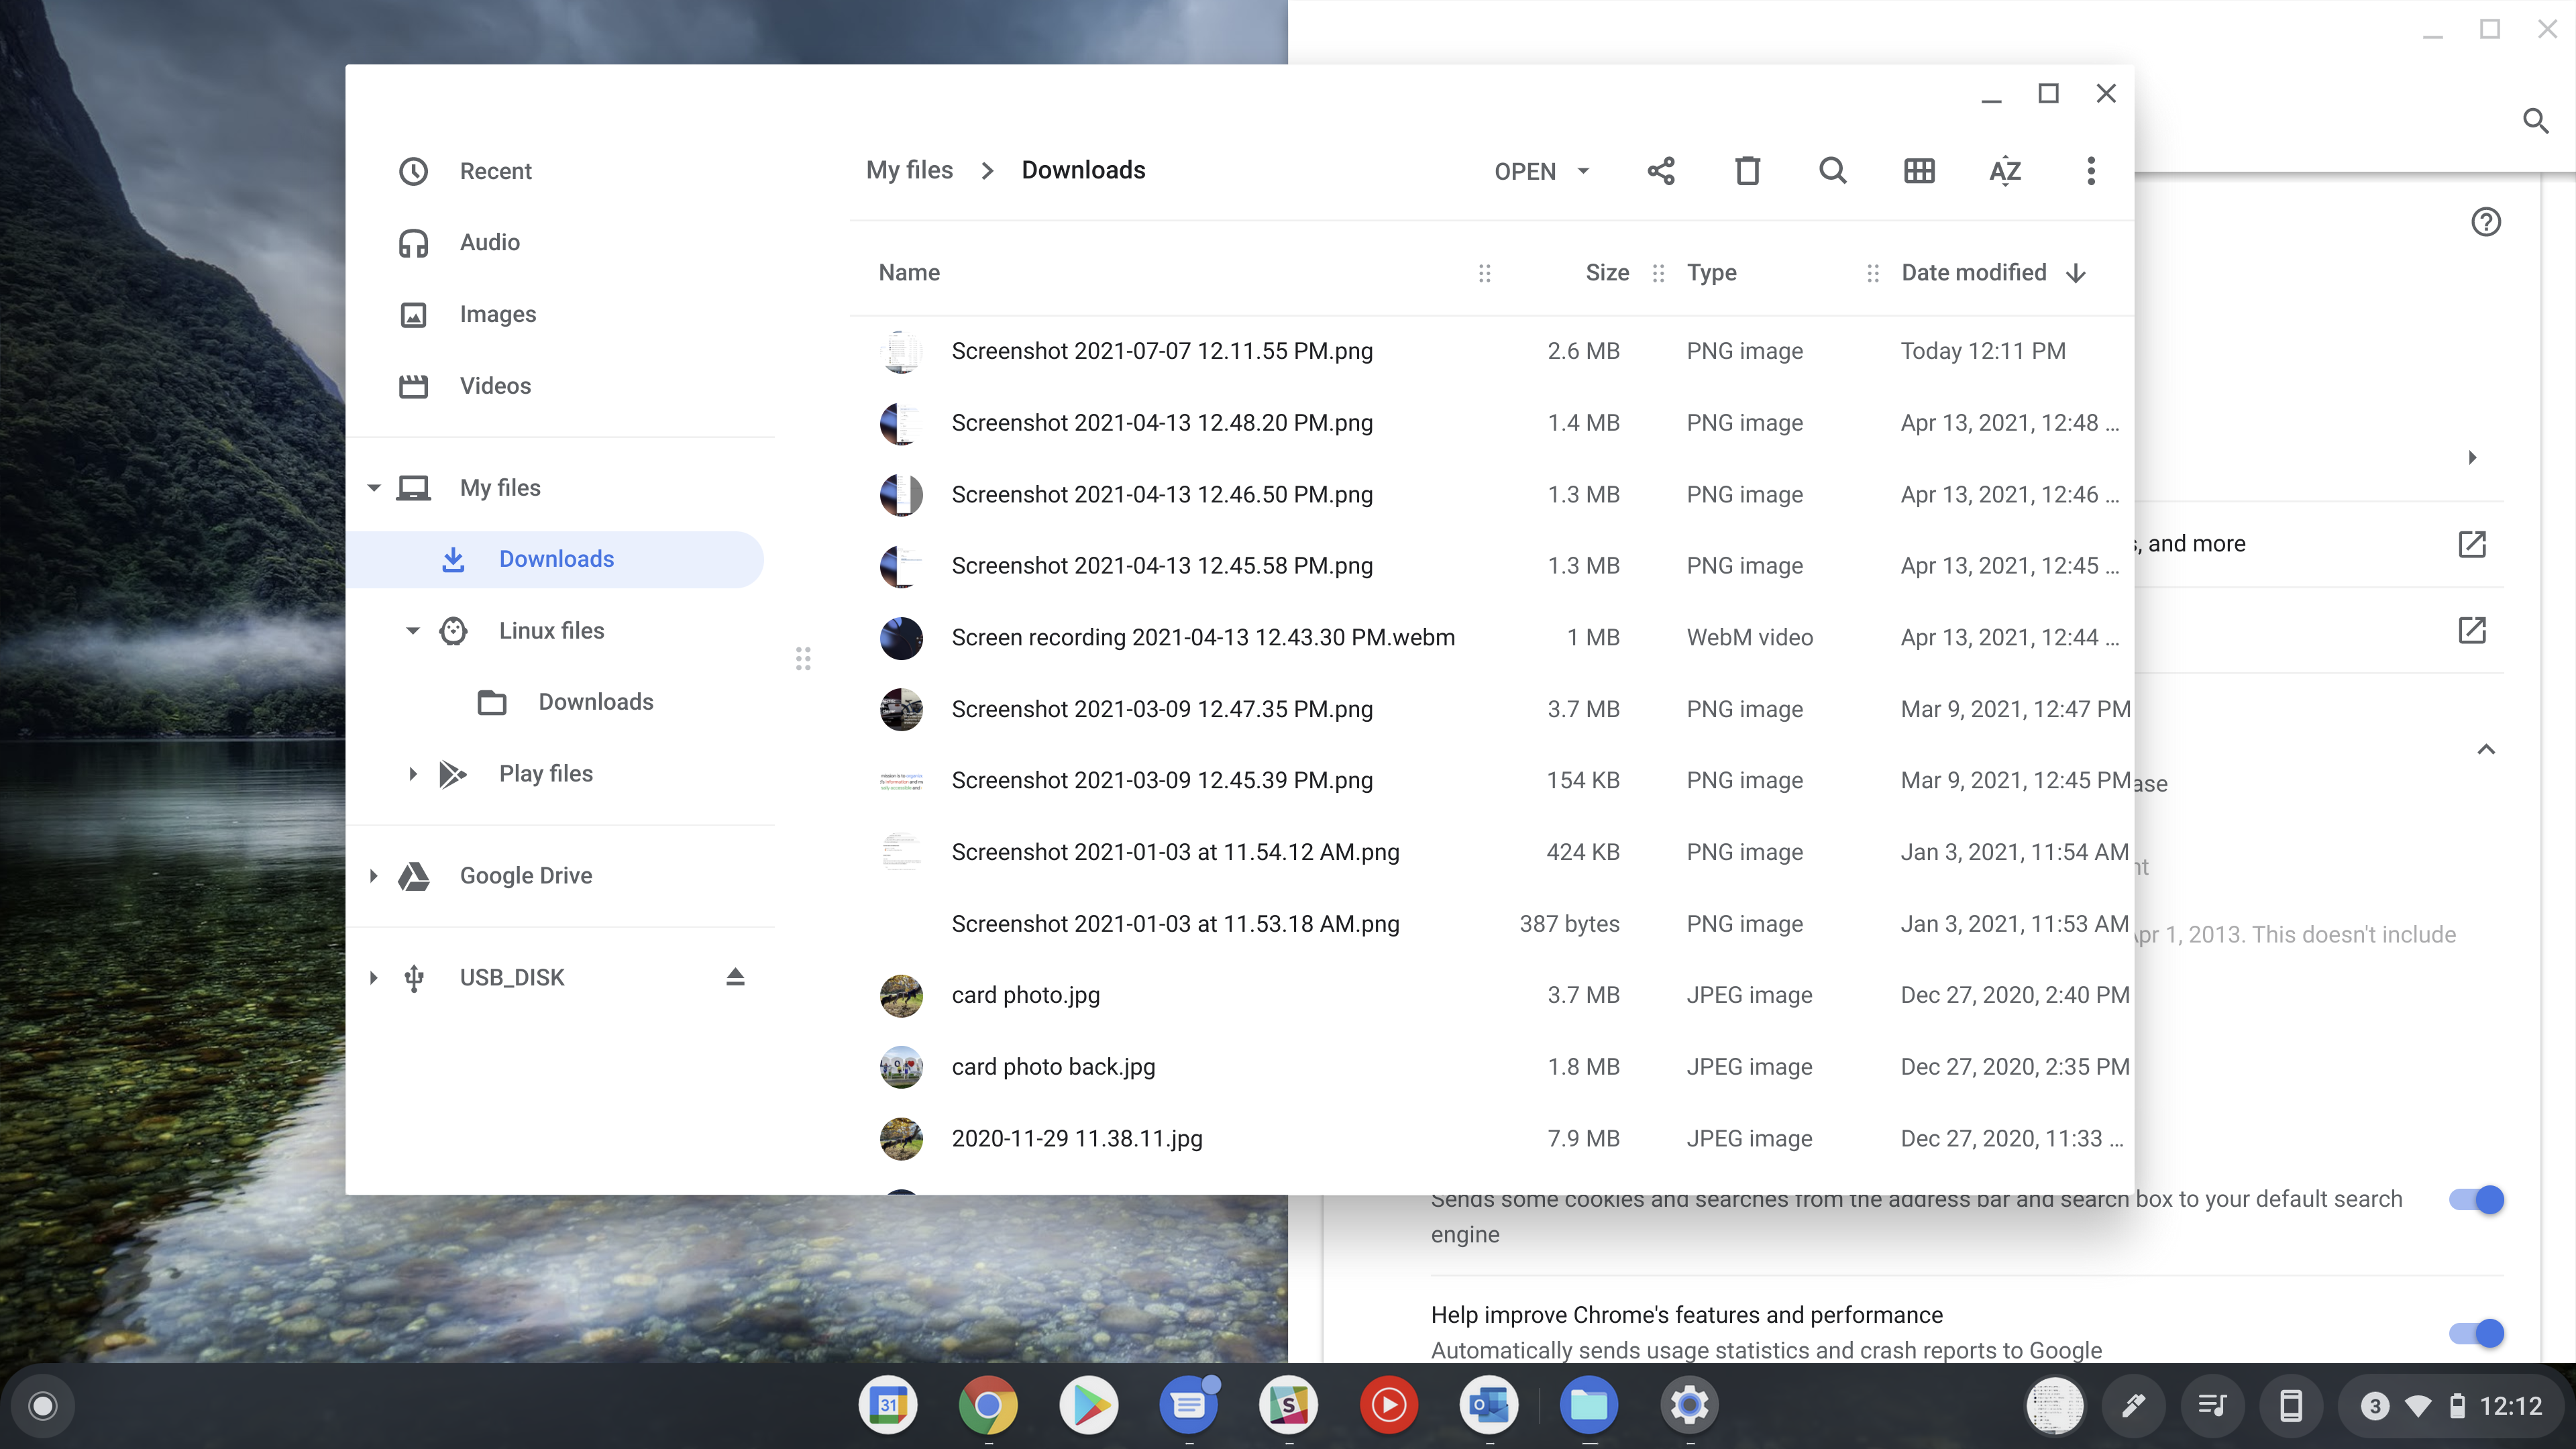 chromebook-my-files-downloads.png